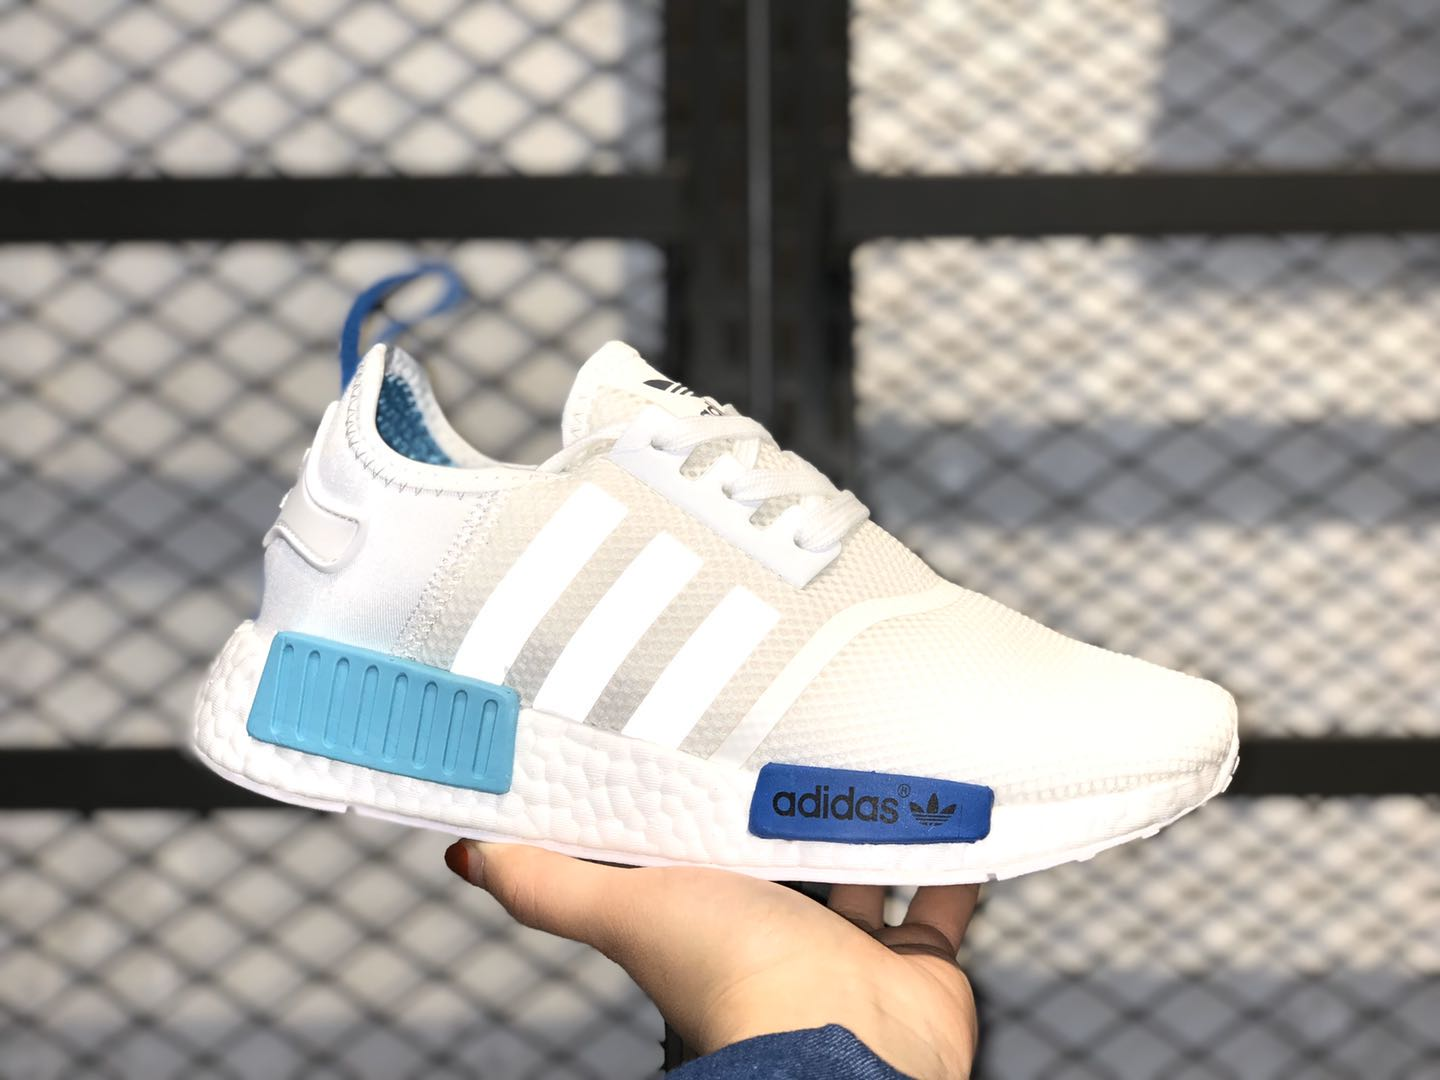 Adidas NMD R1 White/Blue Glow Running Shoes S75235 For Sale